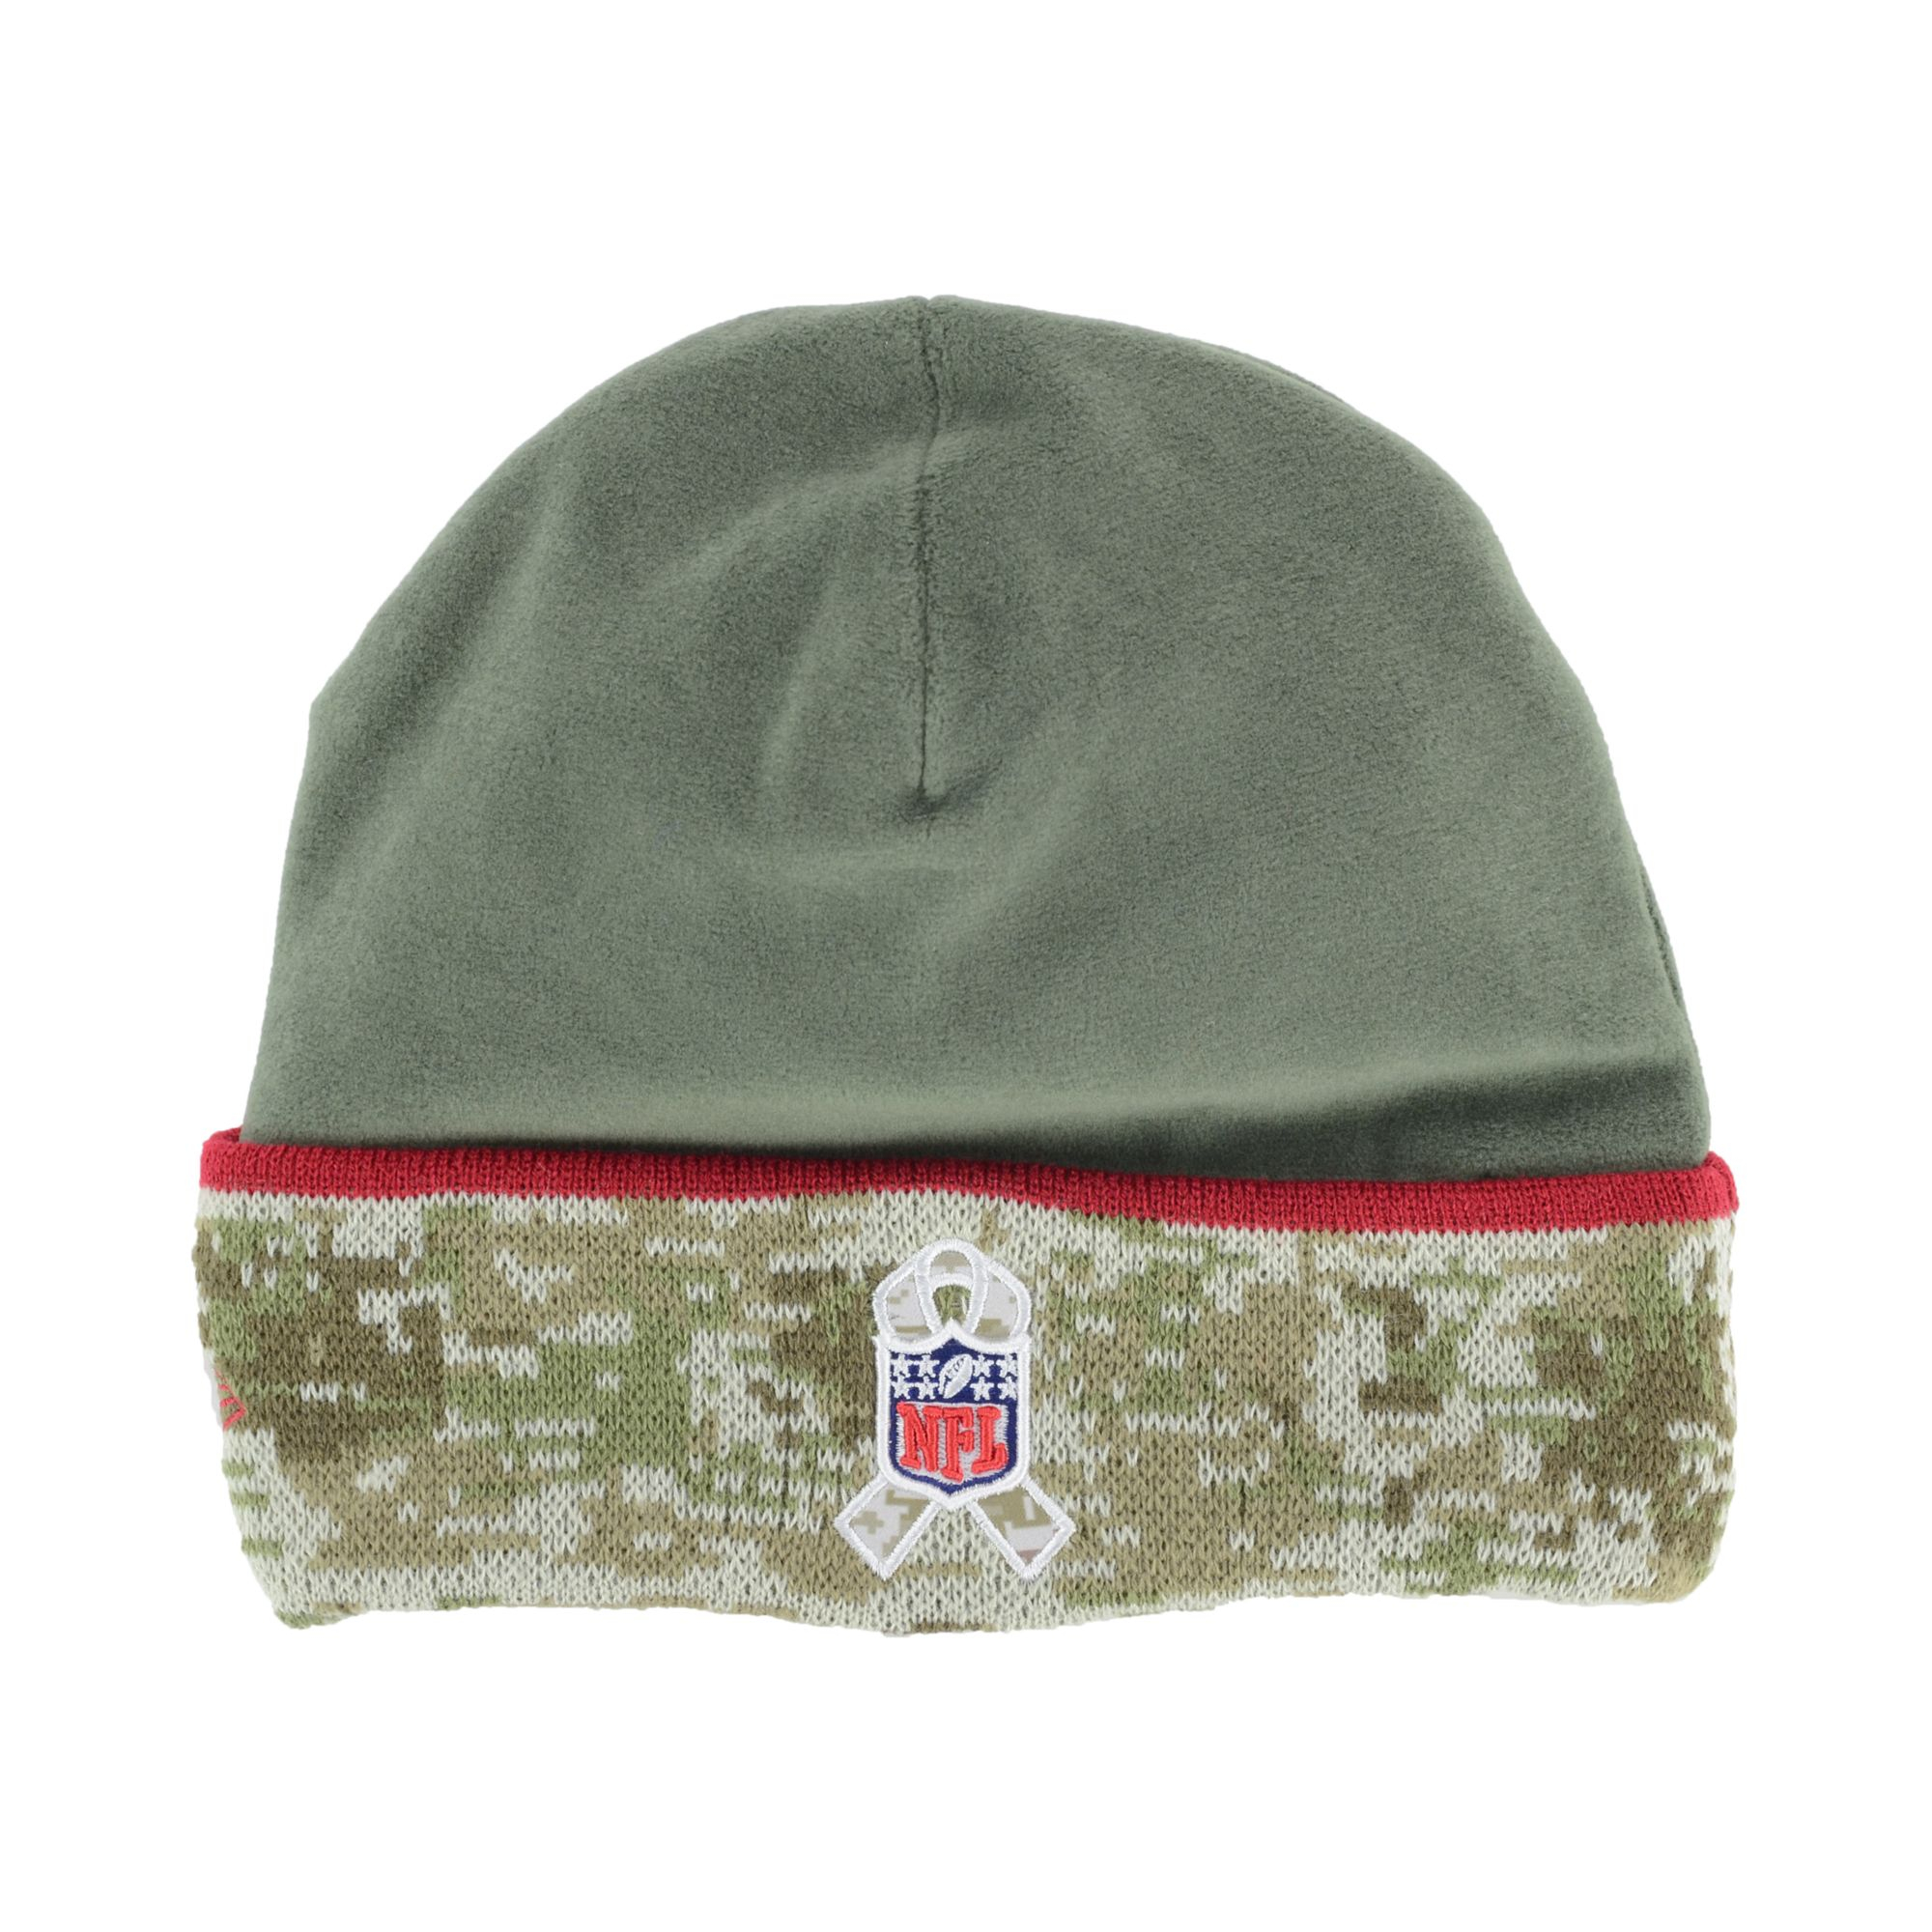 ... cheapest lyst ktz arizona cardinals salute to service knit hat in green  for men ba586 5261f 71d60afe9